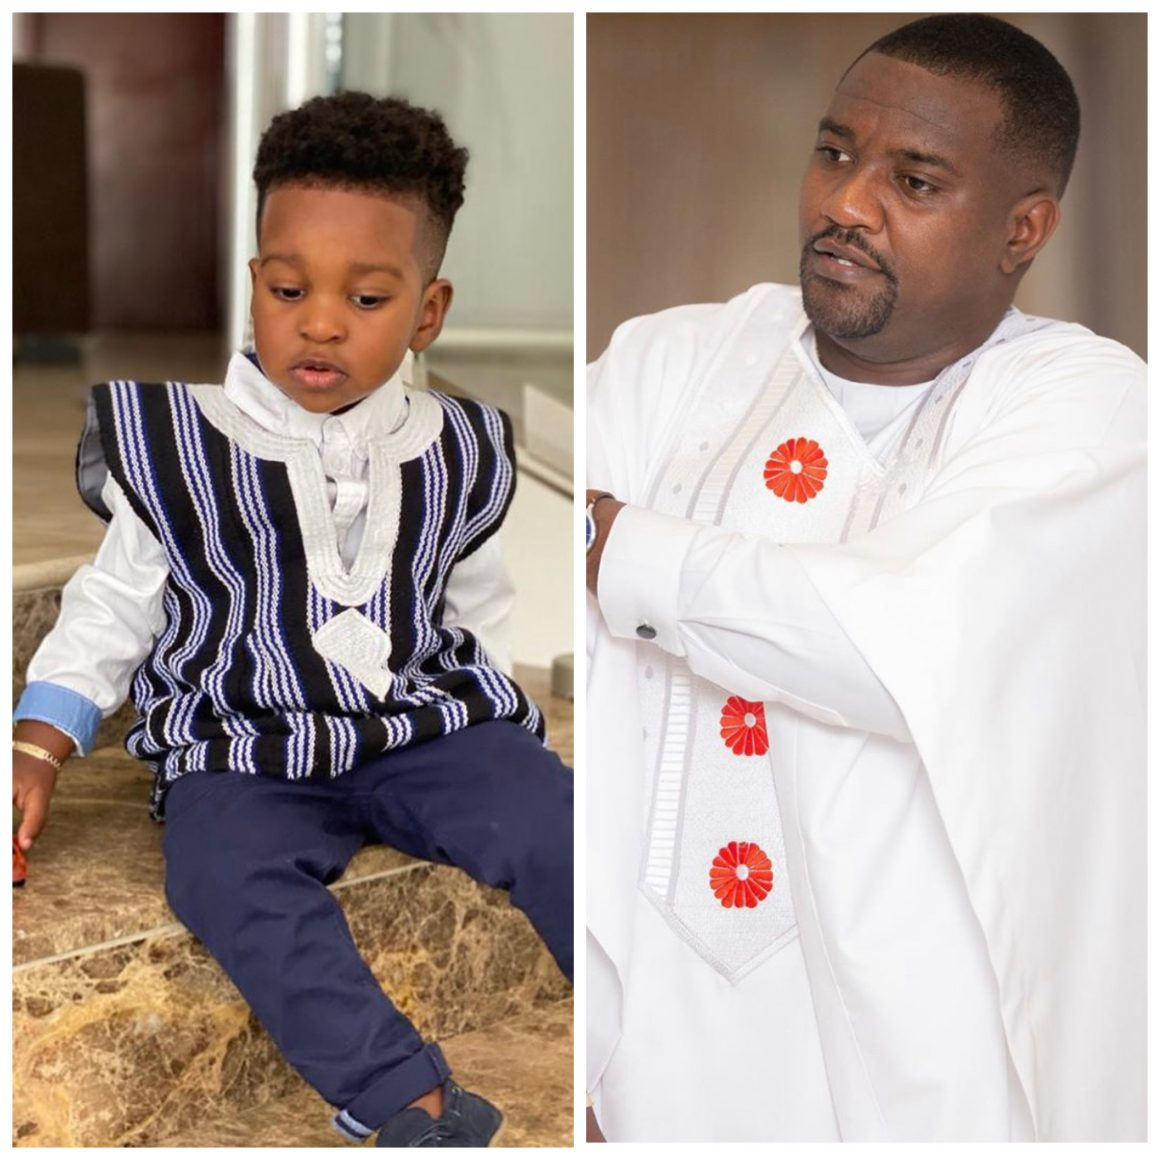 john-dumelo-jnr-turns-2-today-with-a-special-message-from-his-father